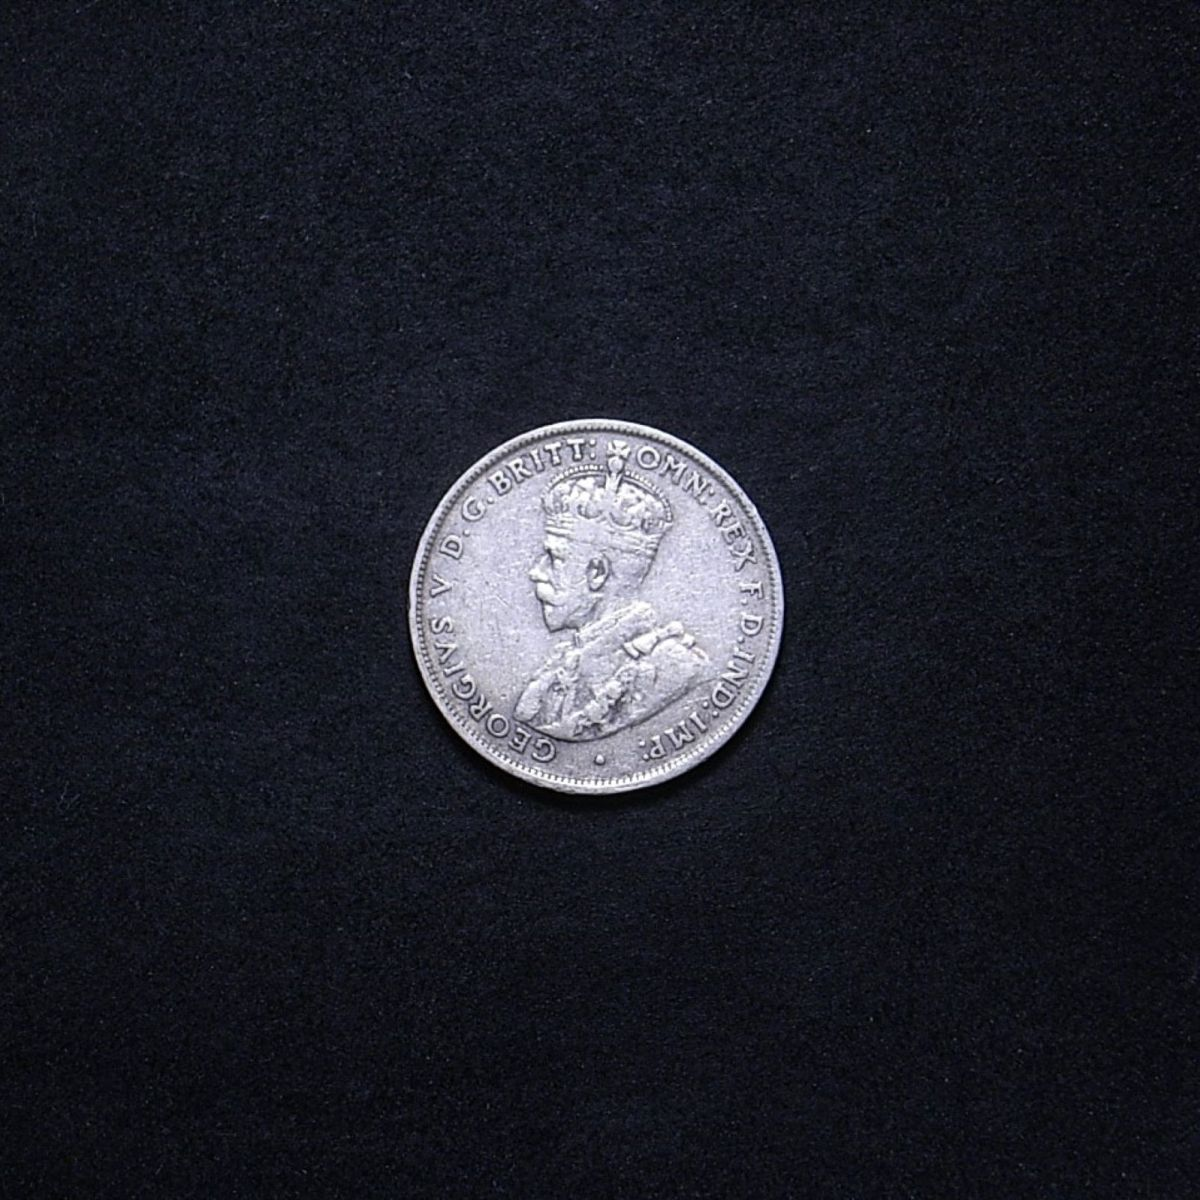 Aussie 1927 florin obverse showing overall appearance of the coin